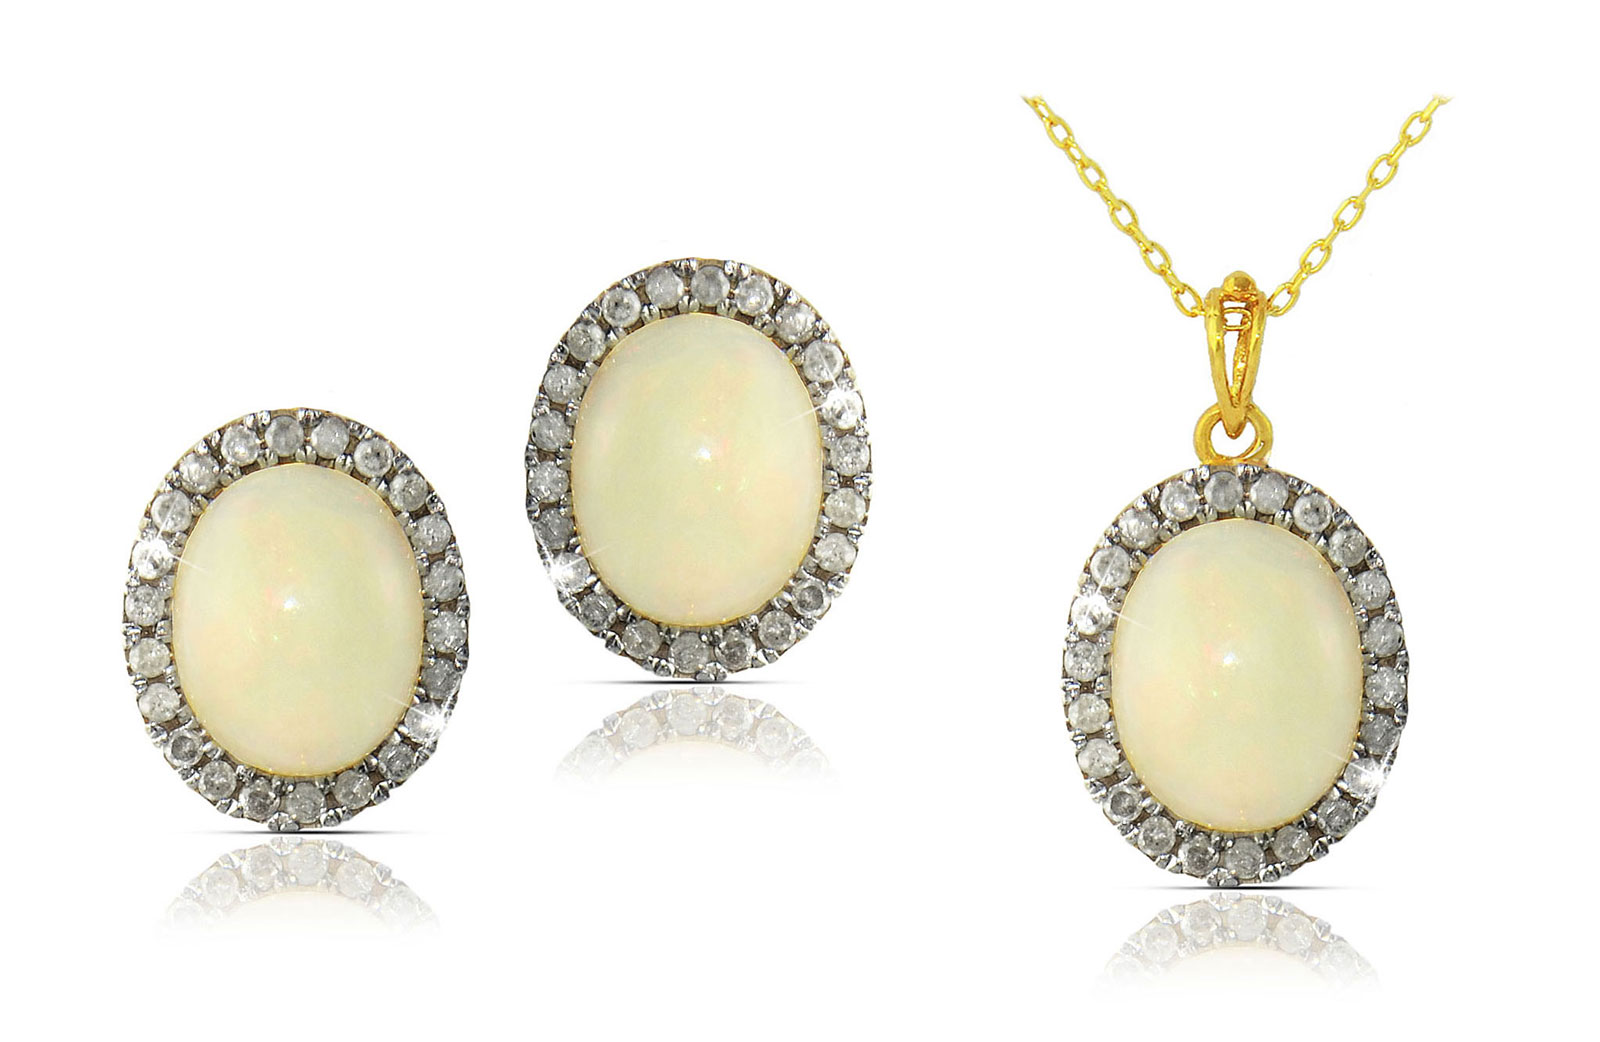 Vera Perla 10k Gold, 0.66Cts Diamonds, Oval Opal Necklace and Earrings Set